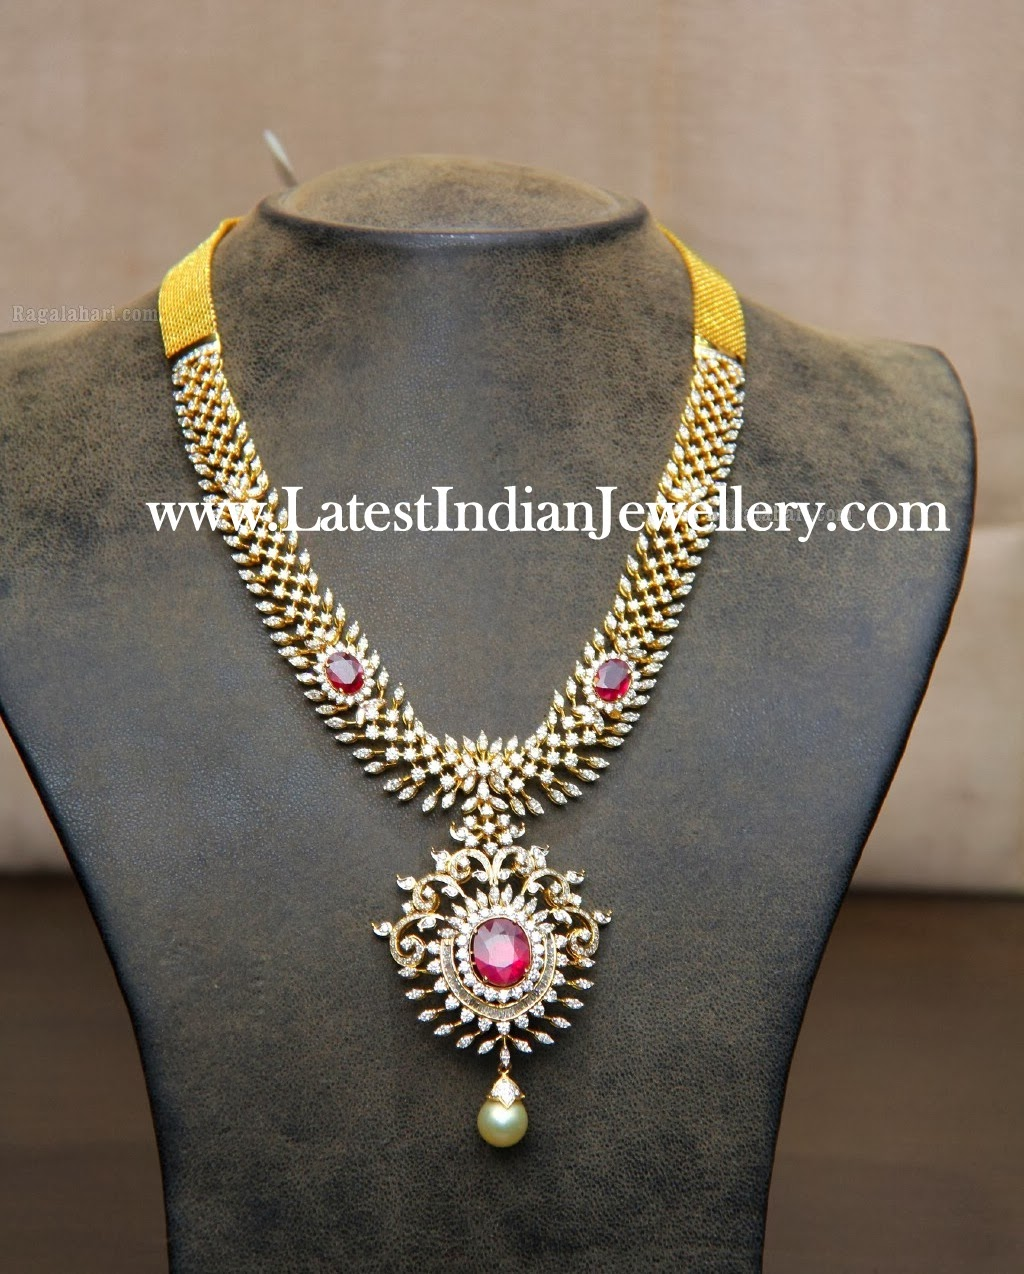 p set indian kundan online emeralds jewelry atlanta american with in islamic diamond pendant gold and